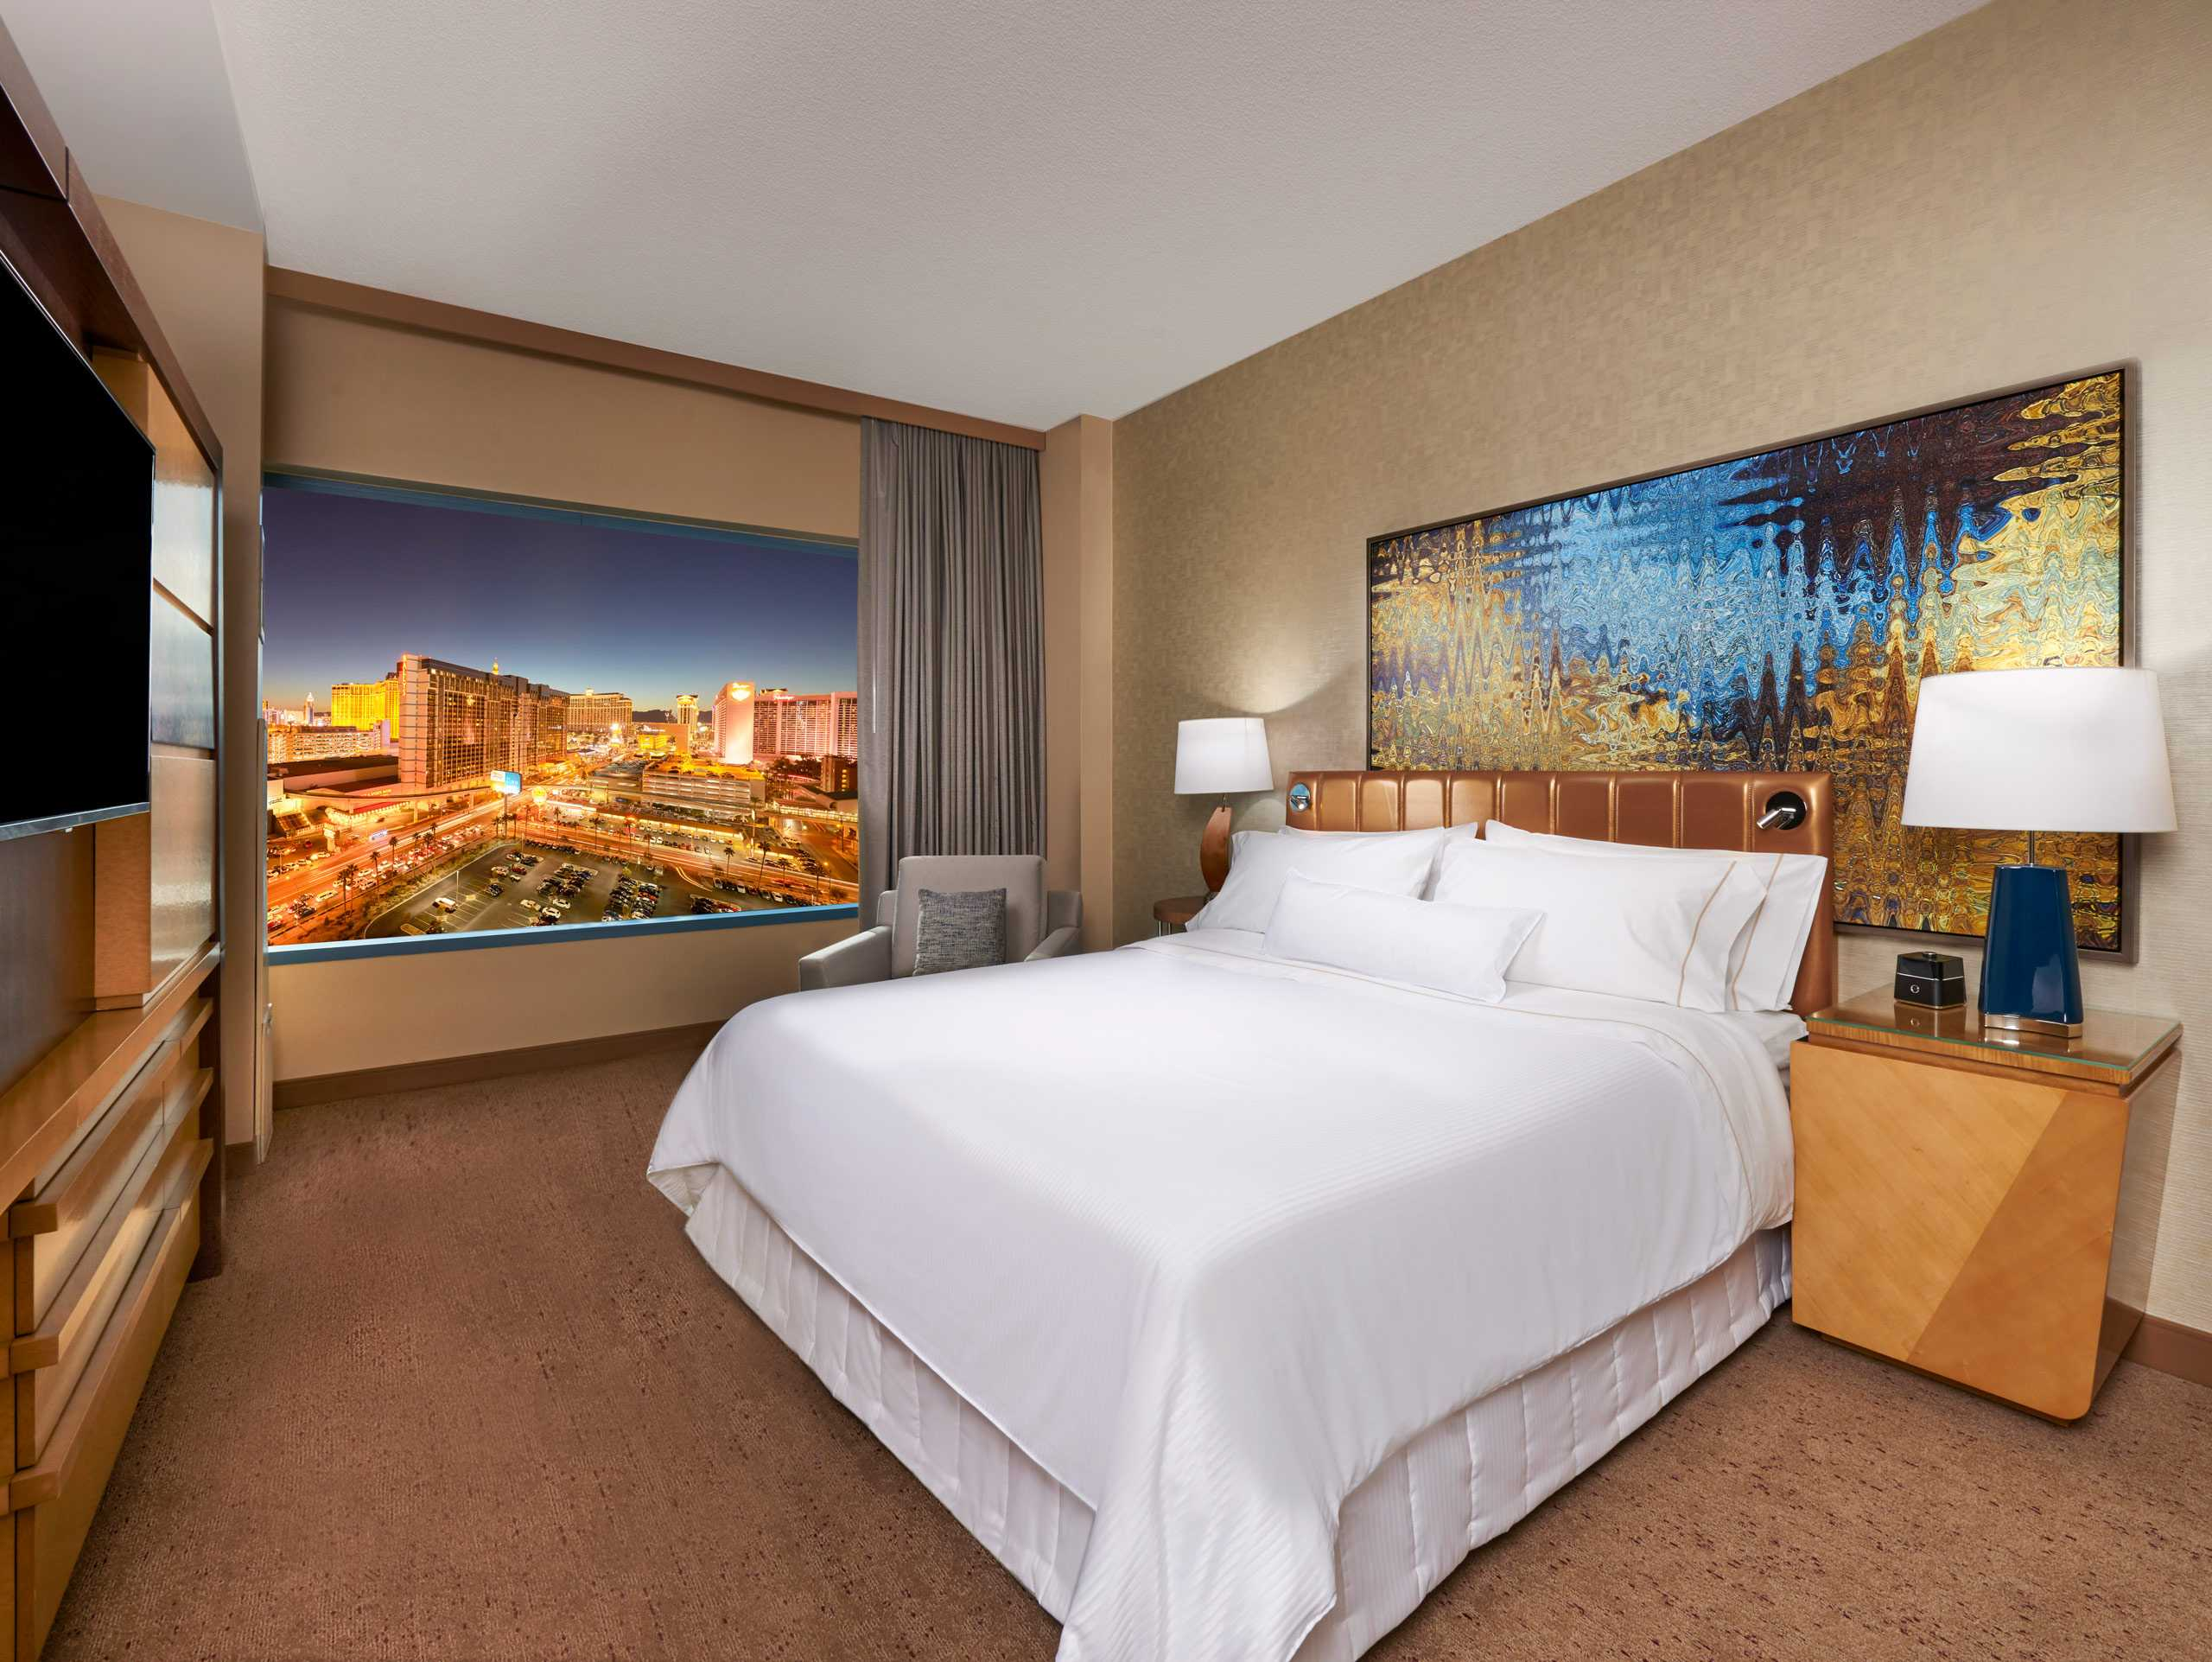 One of the Executive Suites at The Westin Hotel and Spa Las Vegas